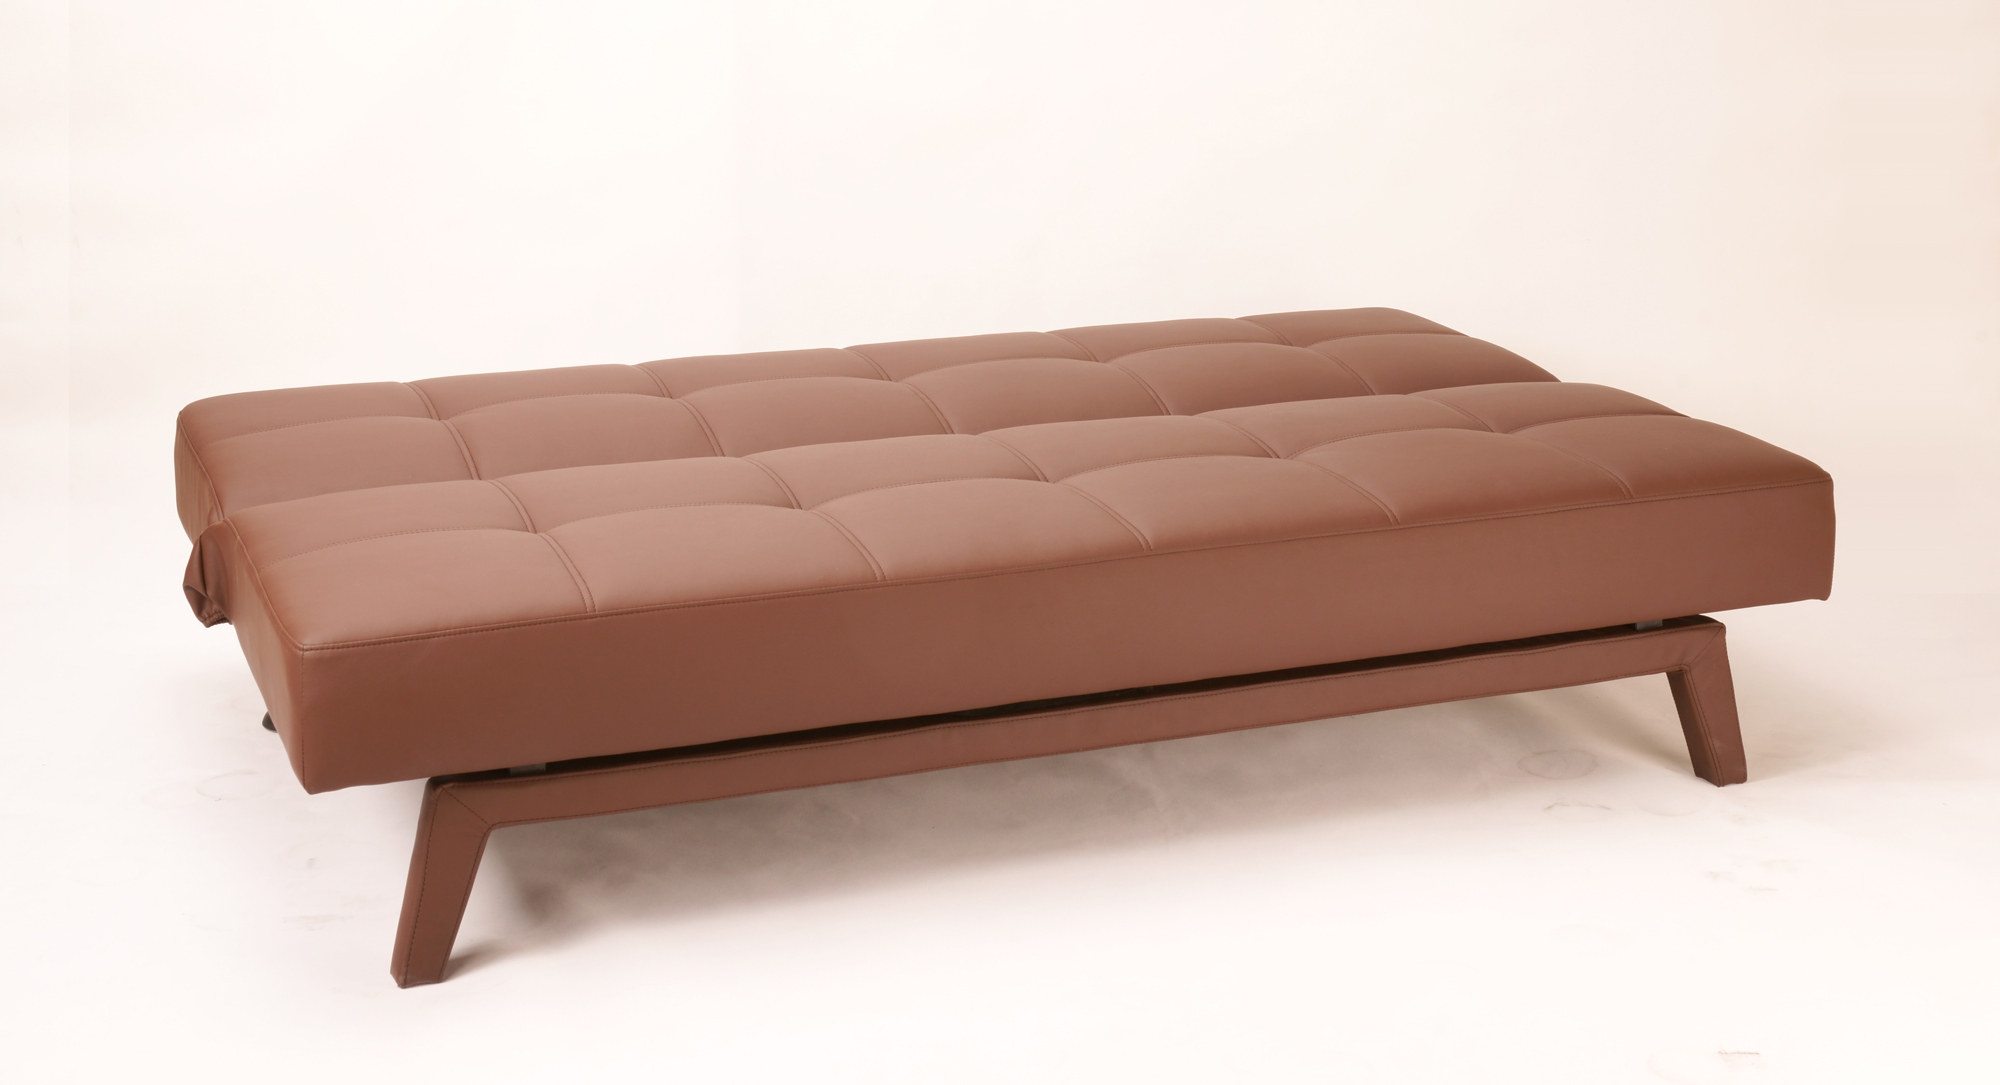 Organic Mattress Los Angeles futons and futon sofa beds with free uk delivery